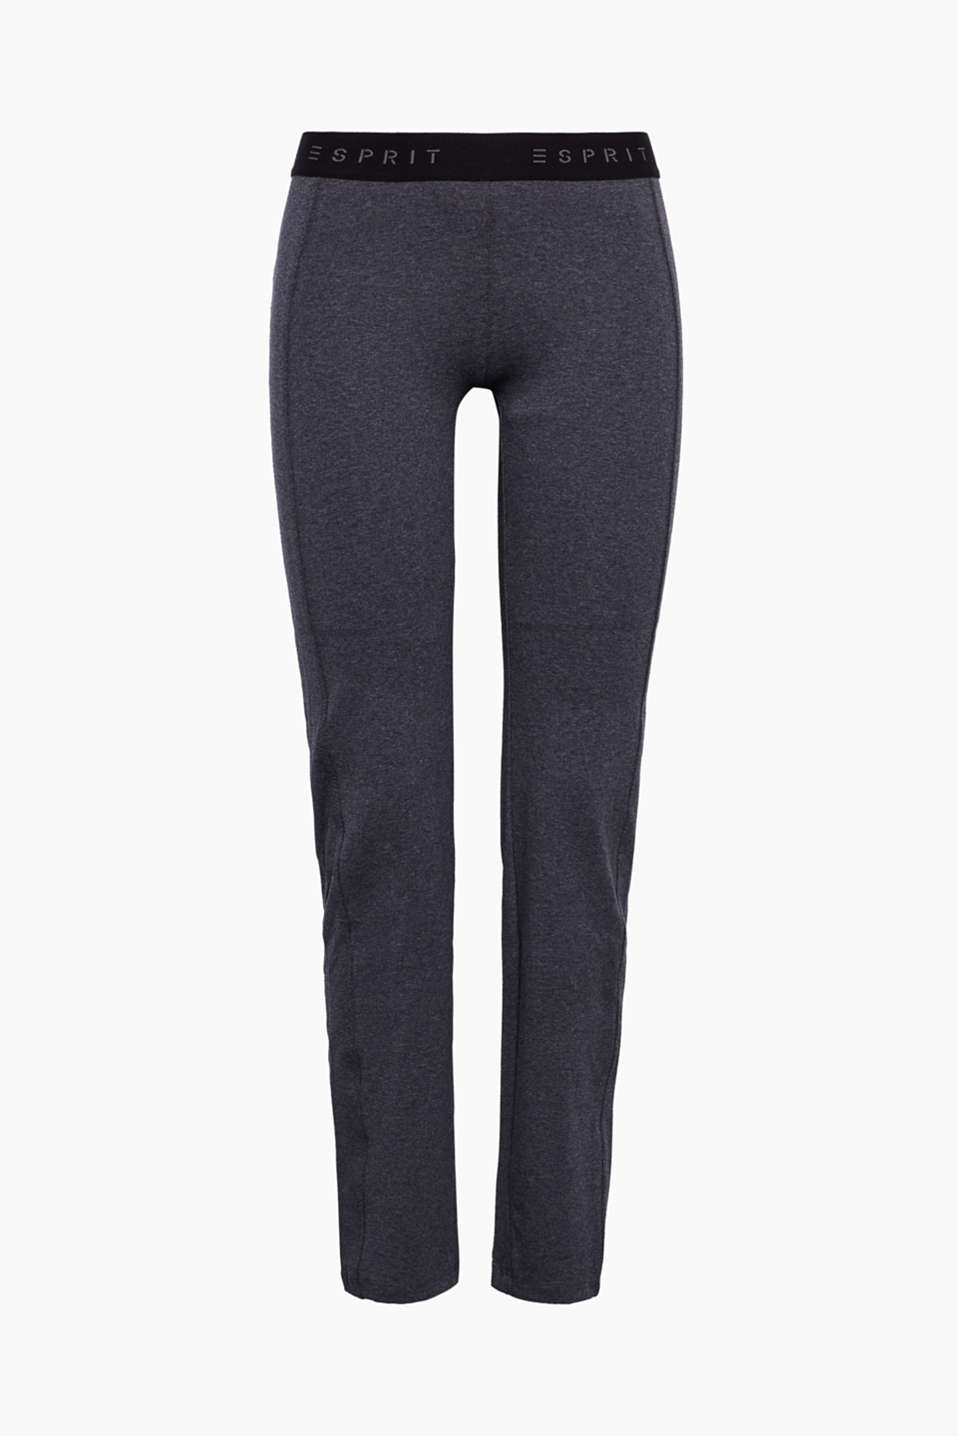 Esprit - cotton-stretch jersey sports trousers